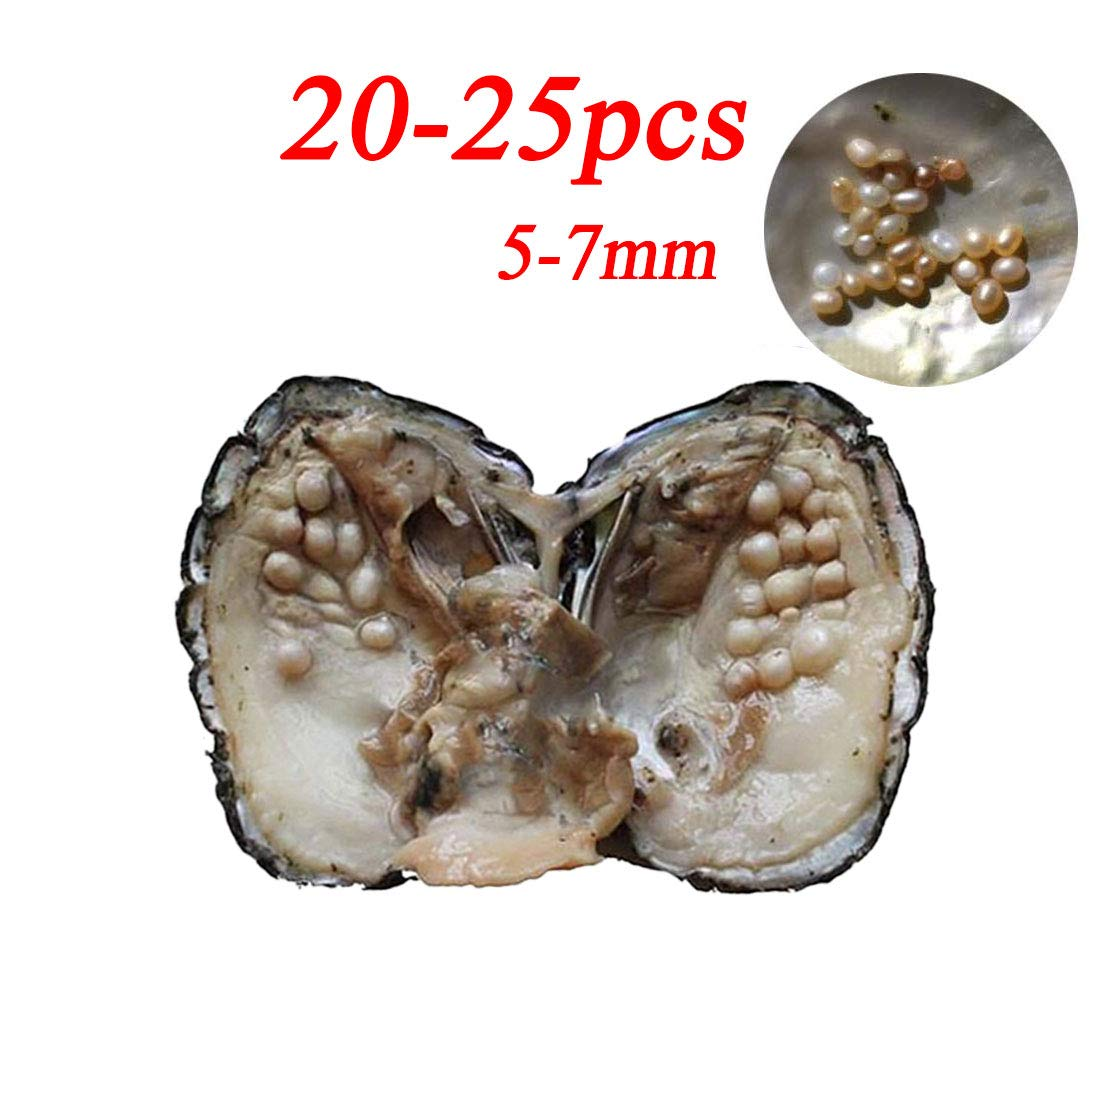 Cultured Pearls in Oysters,Cultured Freshwater Pearl Oysters with Pearls Inside Big Oyster Pearls in Oyster Anniversary Decoration for Women(5-7mm)(1 PC) by Milky Way